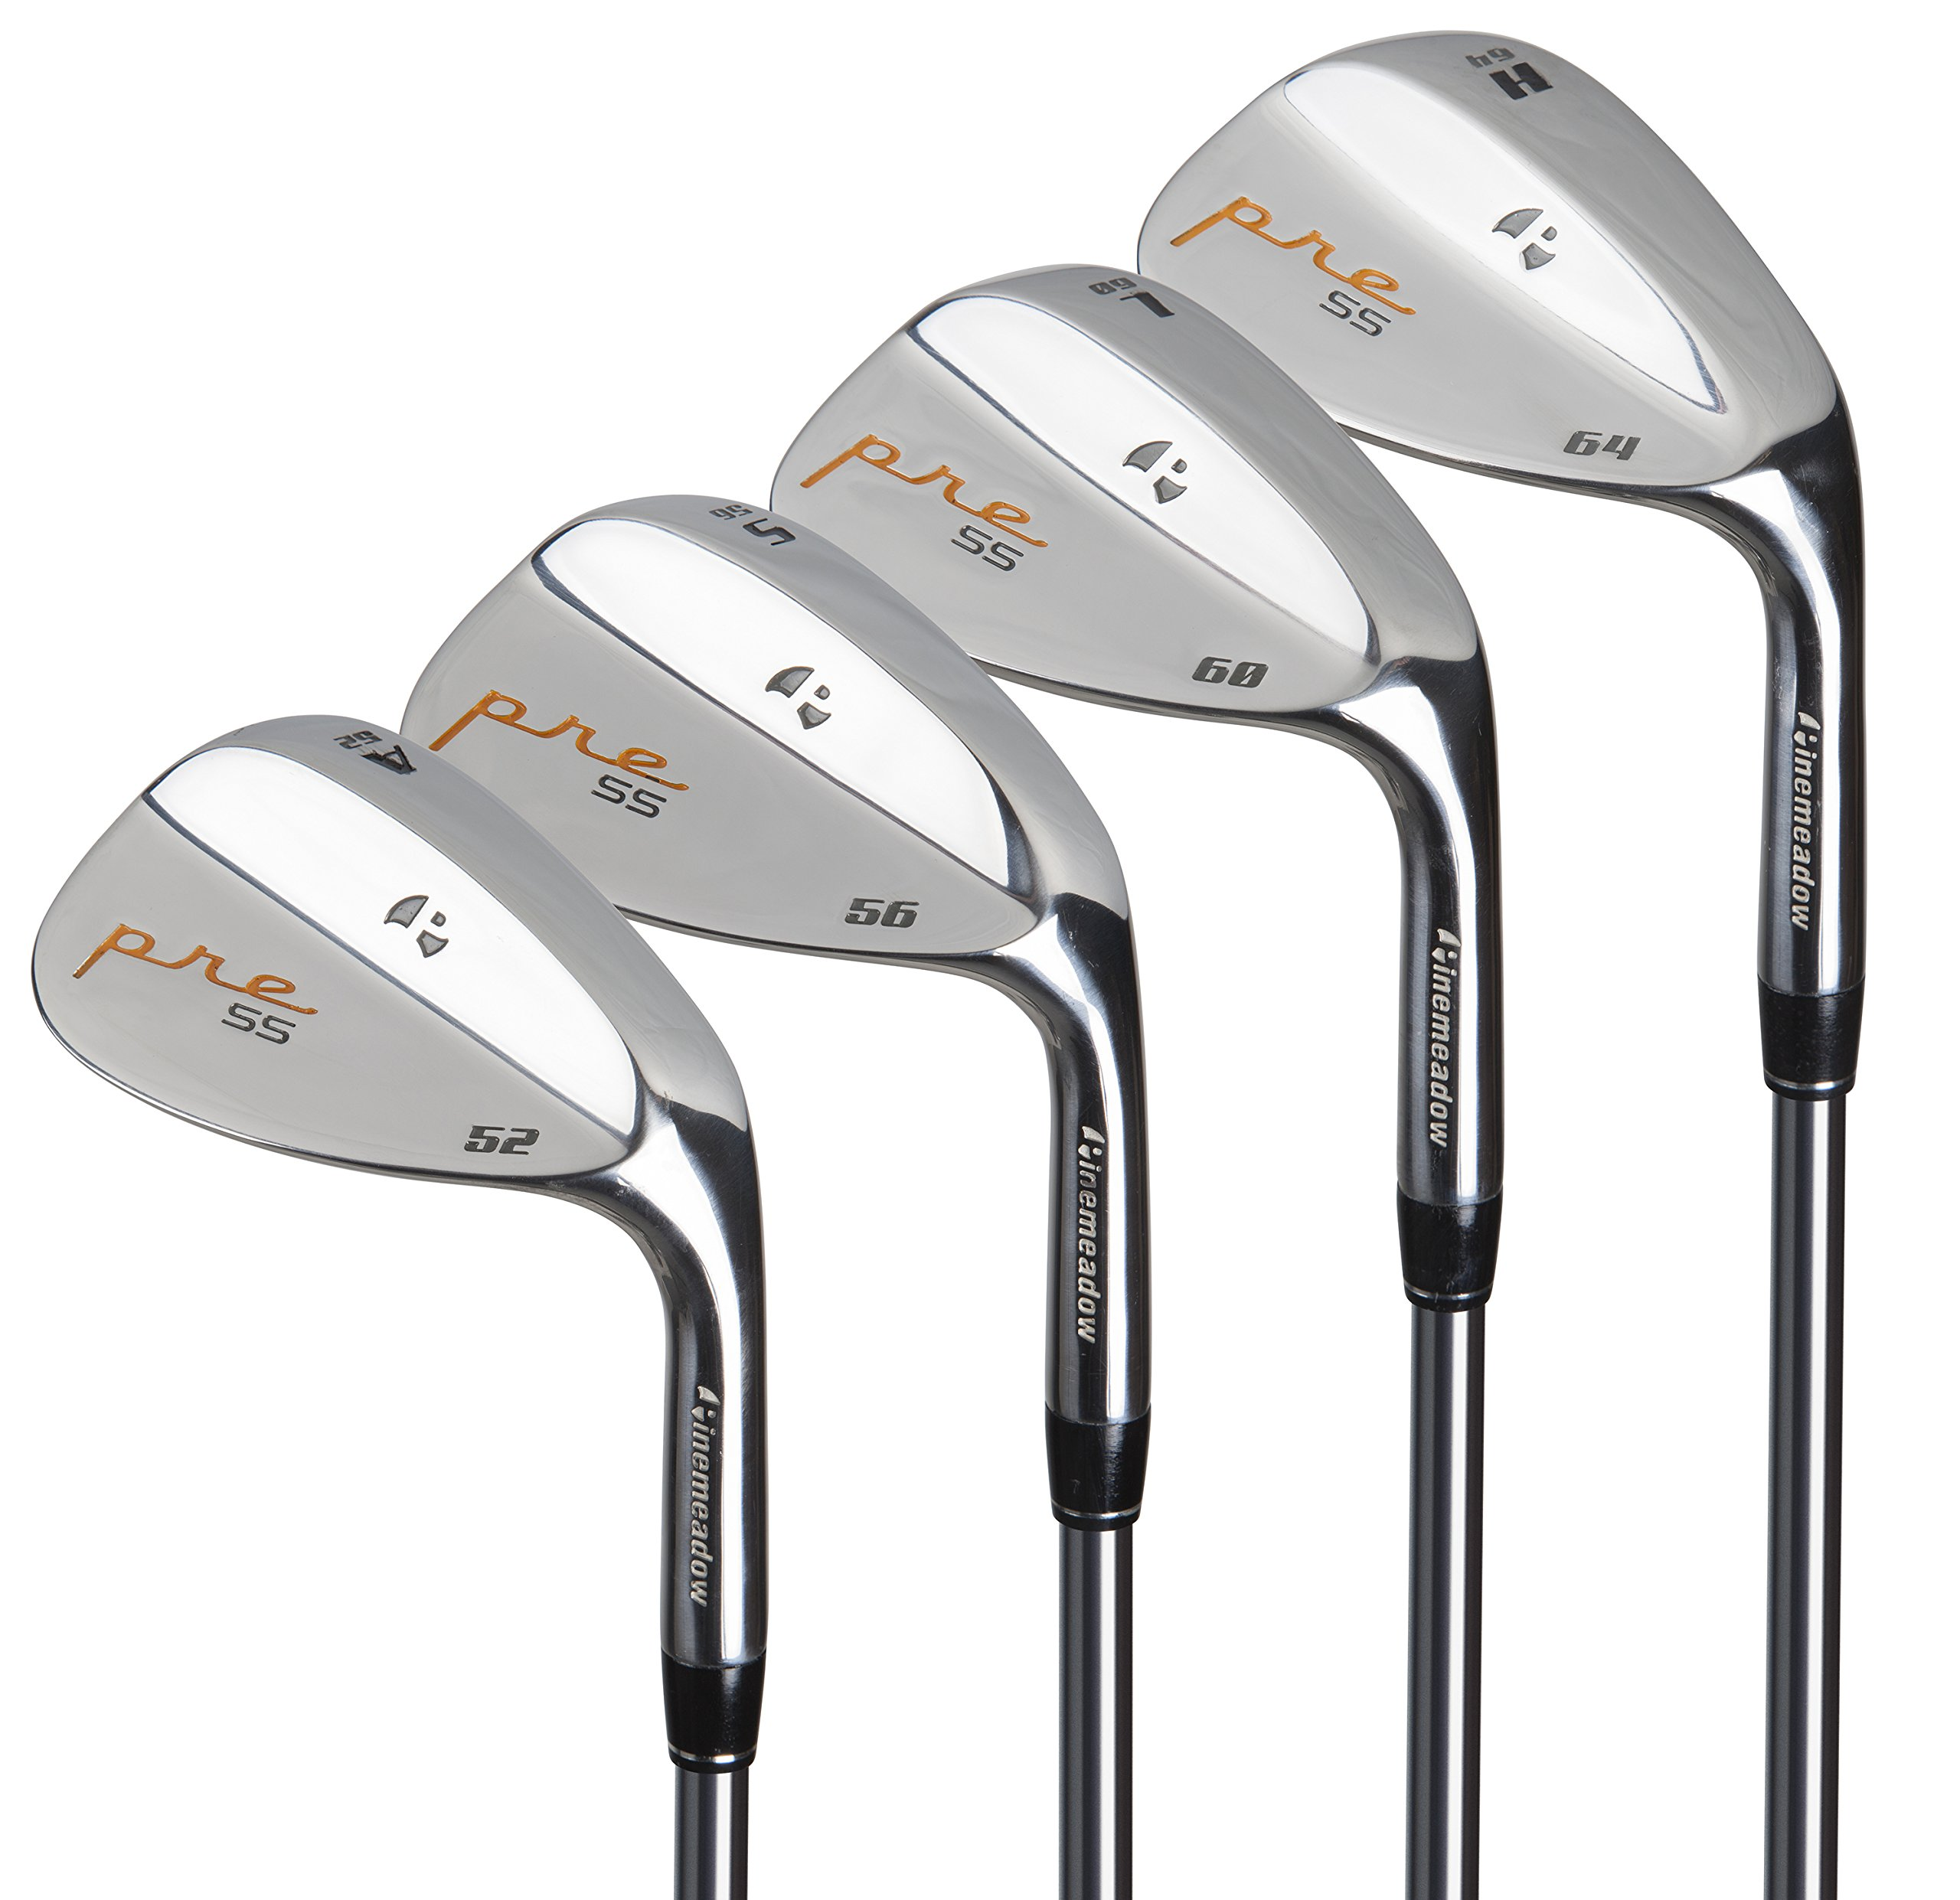 Pinemeadow Golf Men's Pre 4 Wedge Set, Right Hand, Steel, Regular, 52, 56, 60, 64 by Pinemeadow Golf (Image #2)